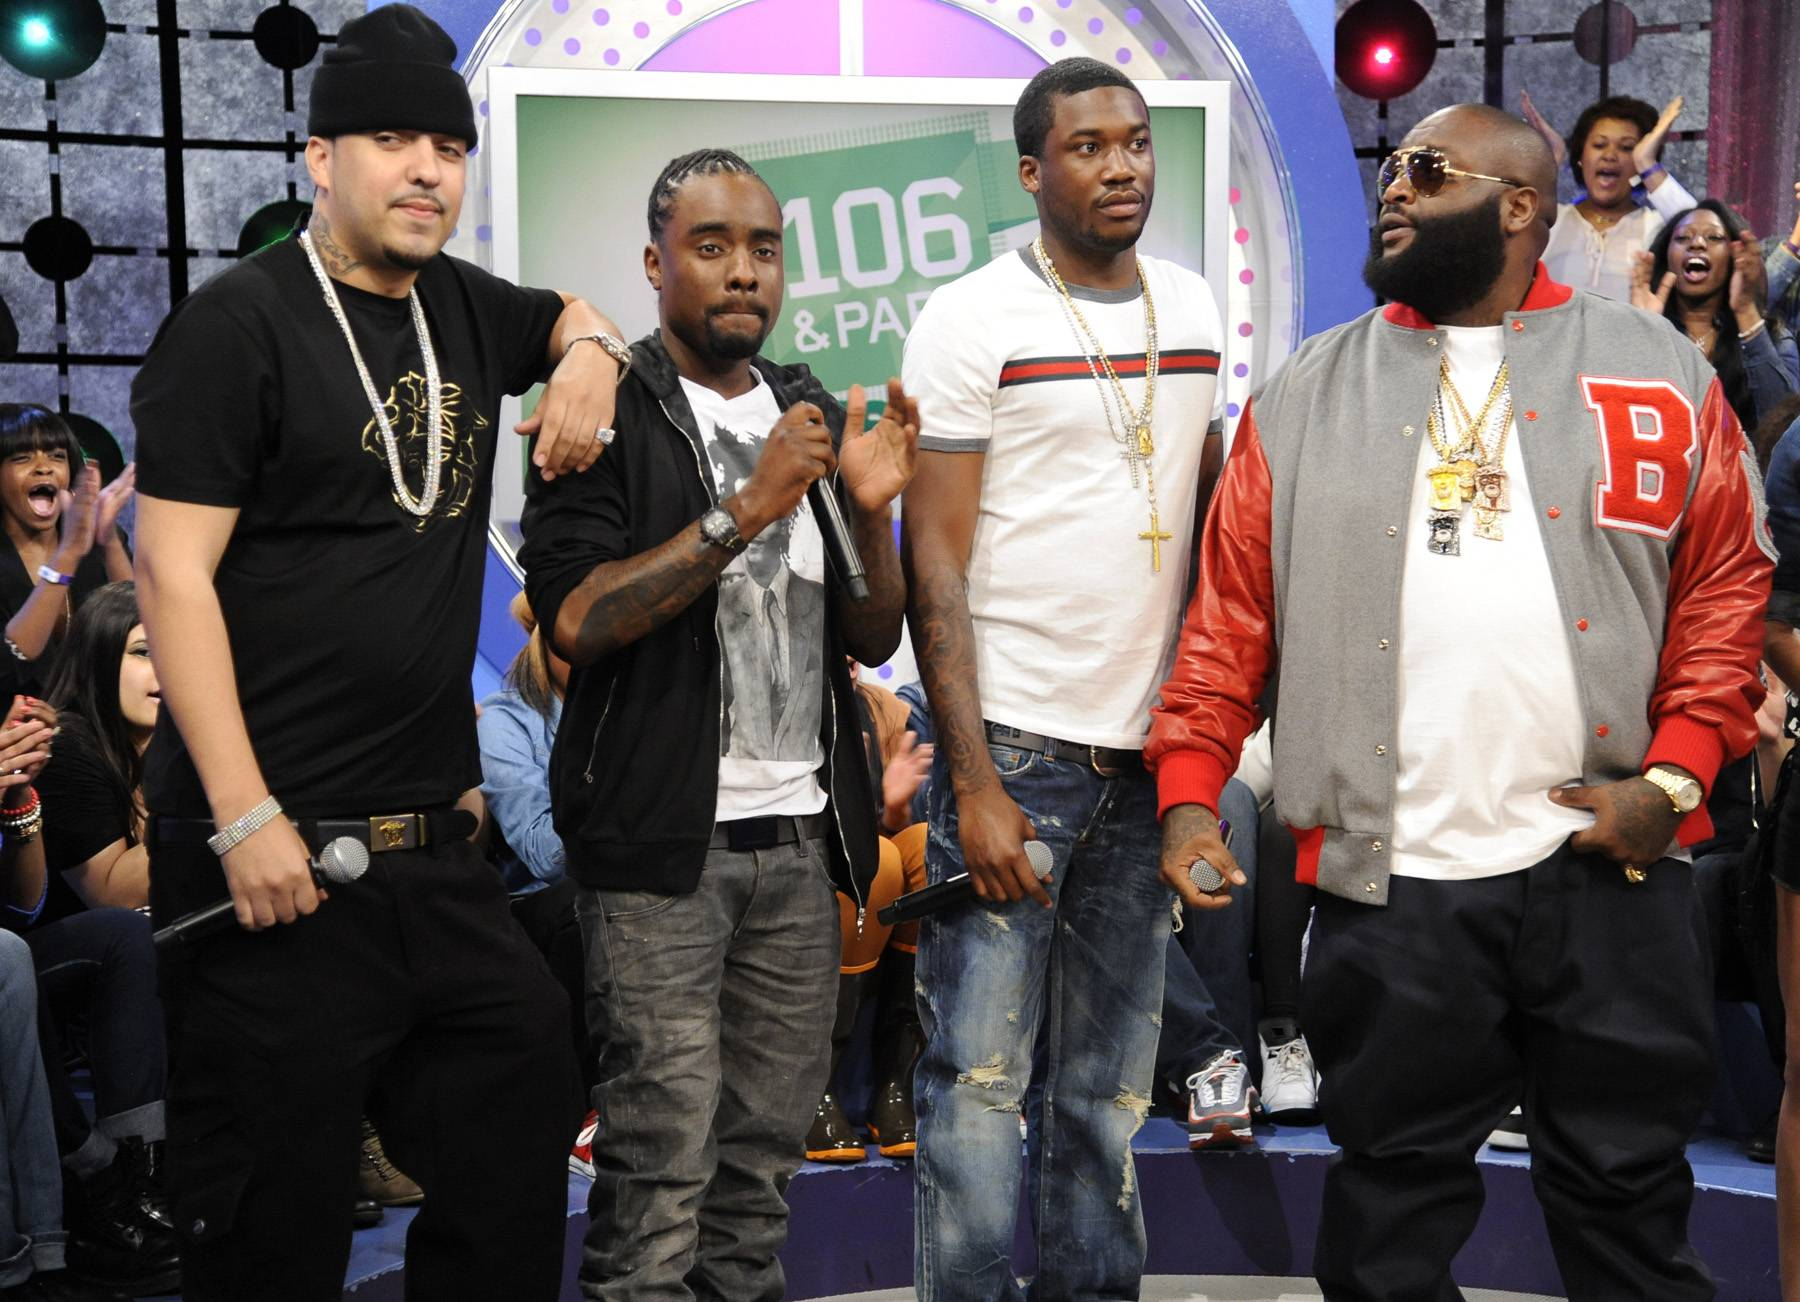 The Crew - MMG members Wale, Meek Mill and Rick Ross with Bad Boy French Montana at 106 & Park, May 2, 2012. (Photo: John Ricard/BET)